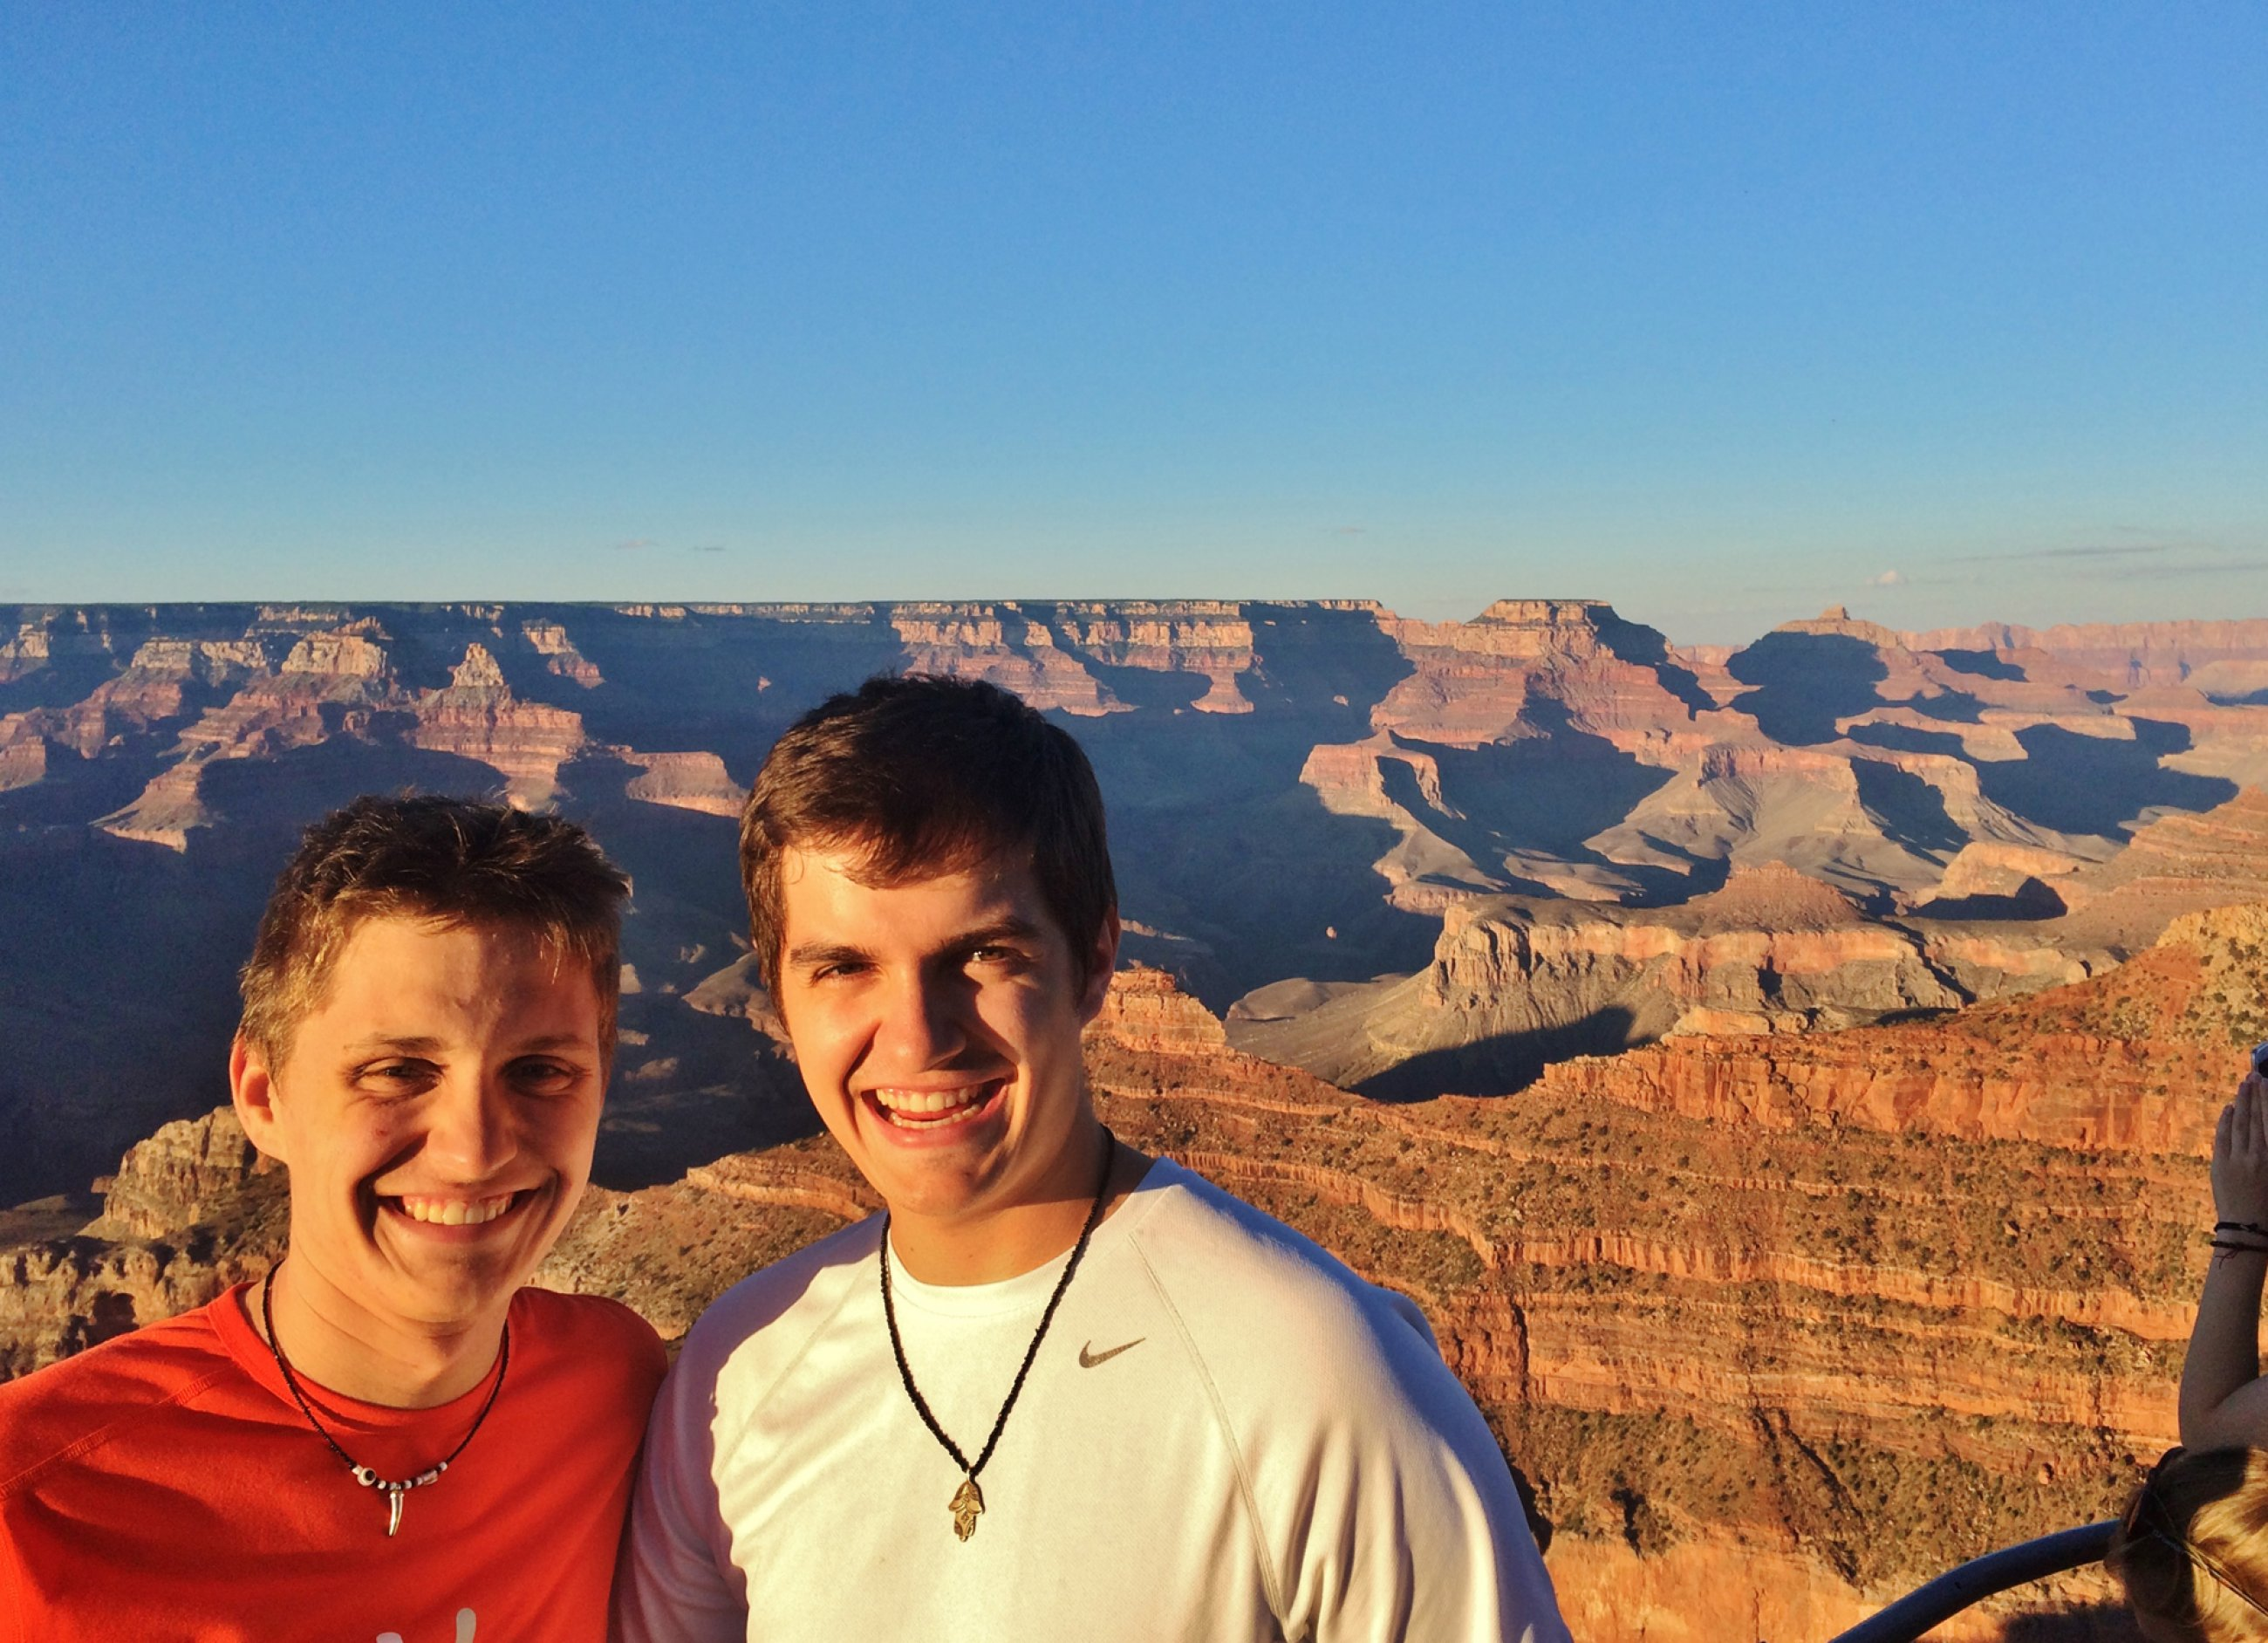 https://bubo.sk/uploads/galleries/8379/grand-canyon-family.jpg